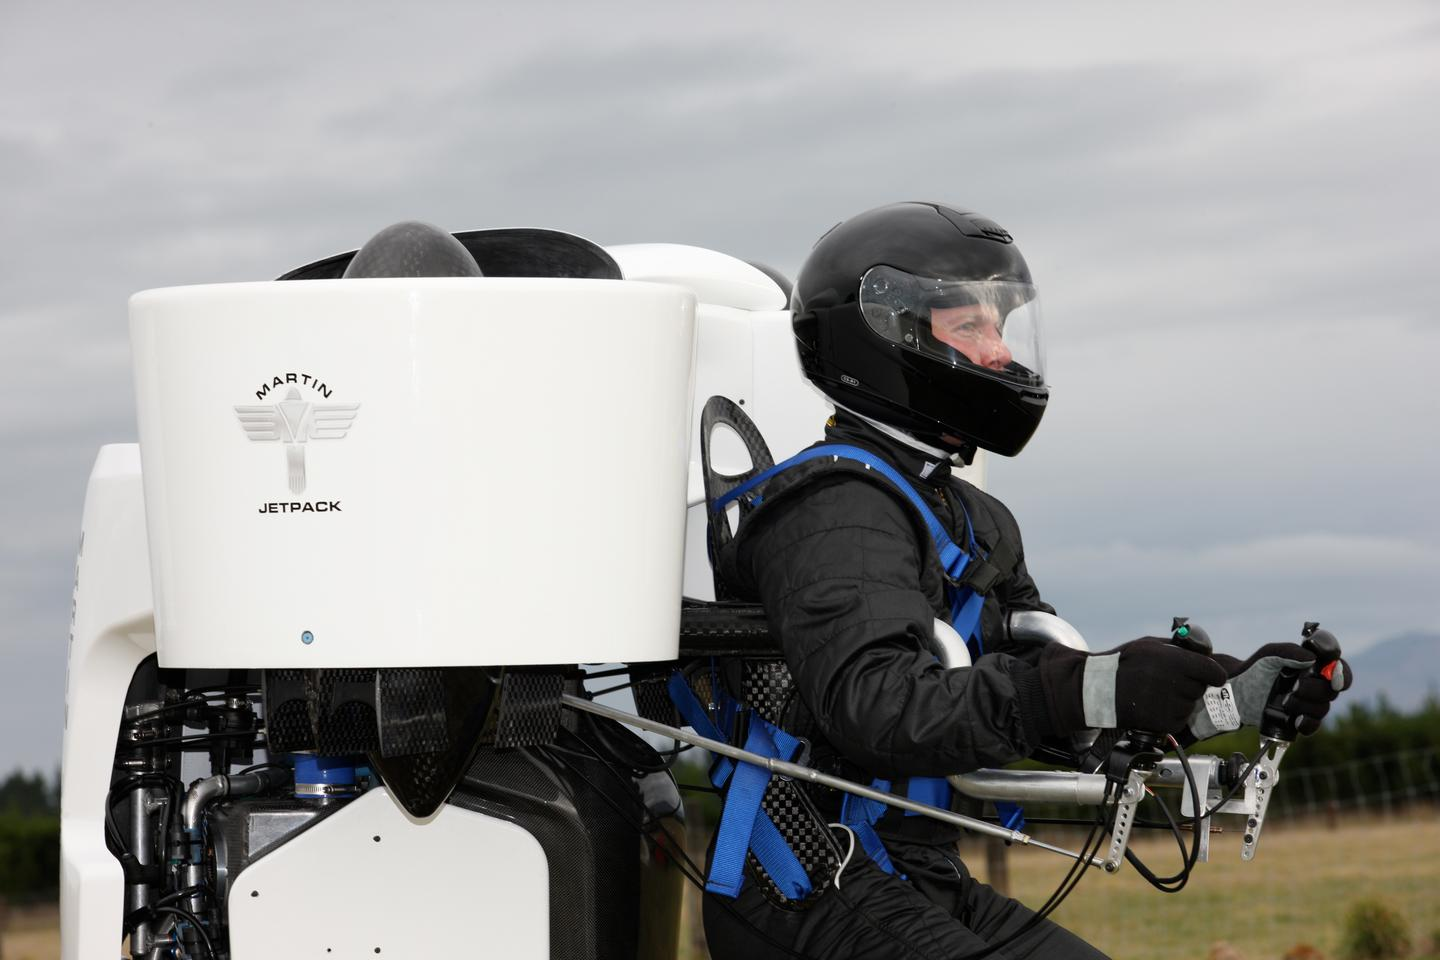 The Martin Aircraft jetpack is the first commercially-available jetpack